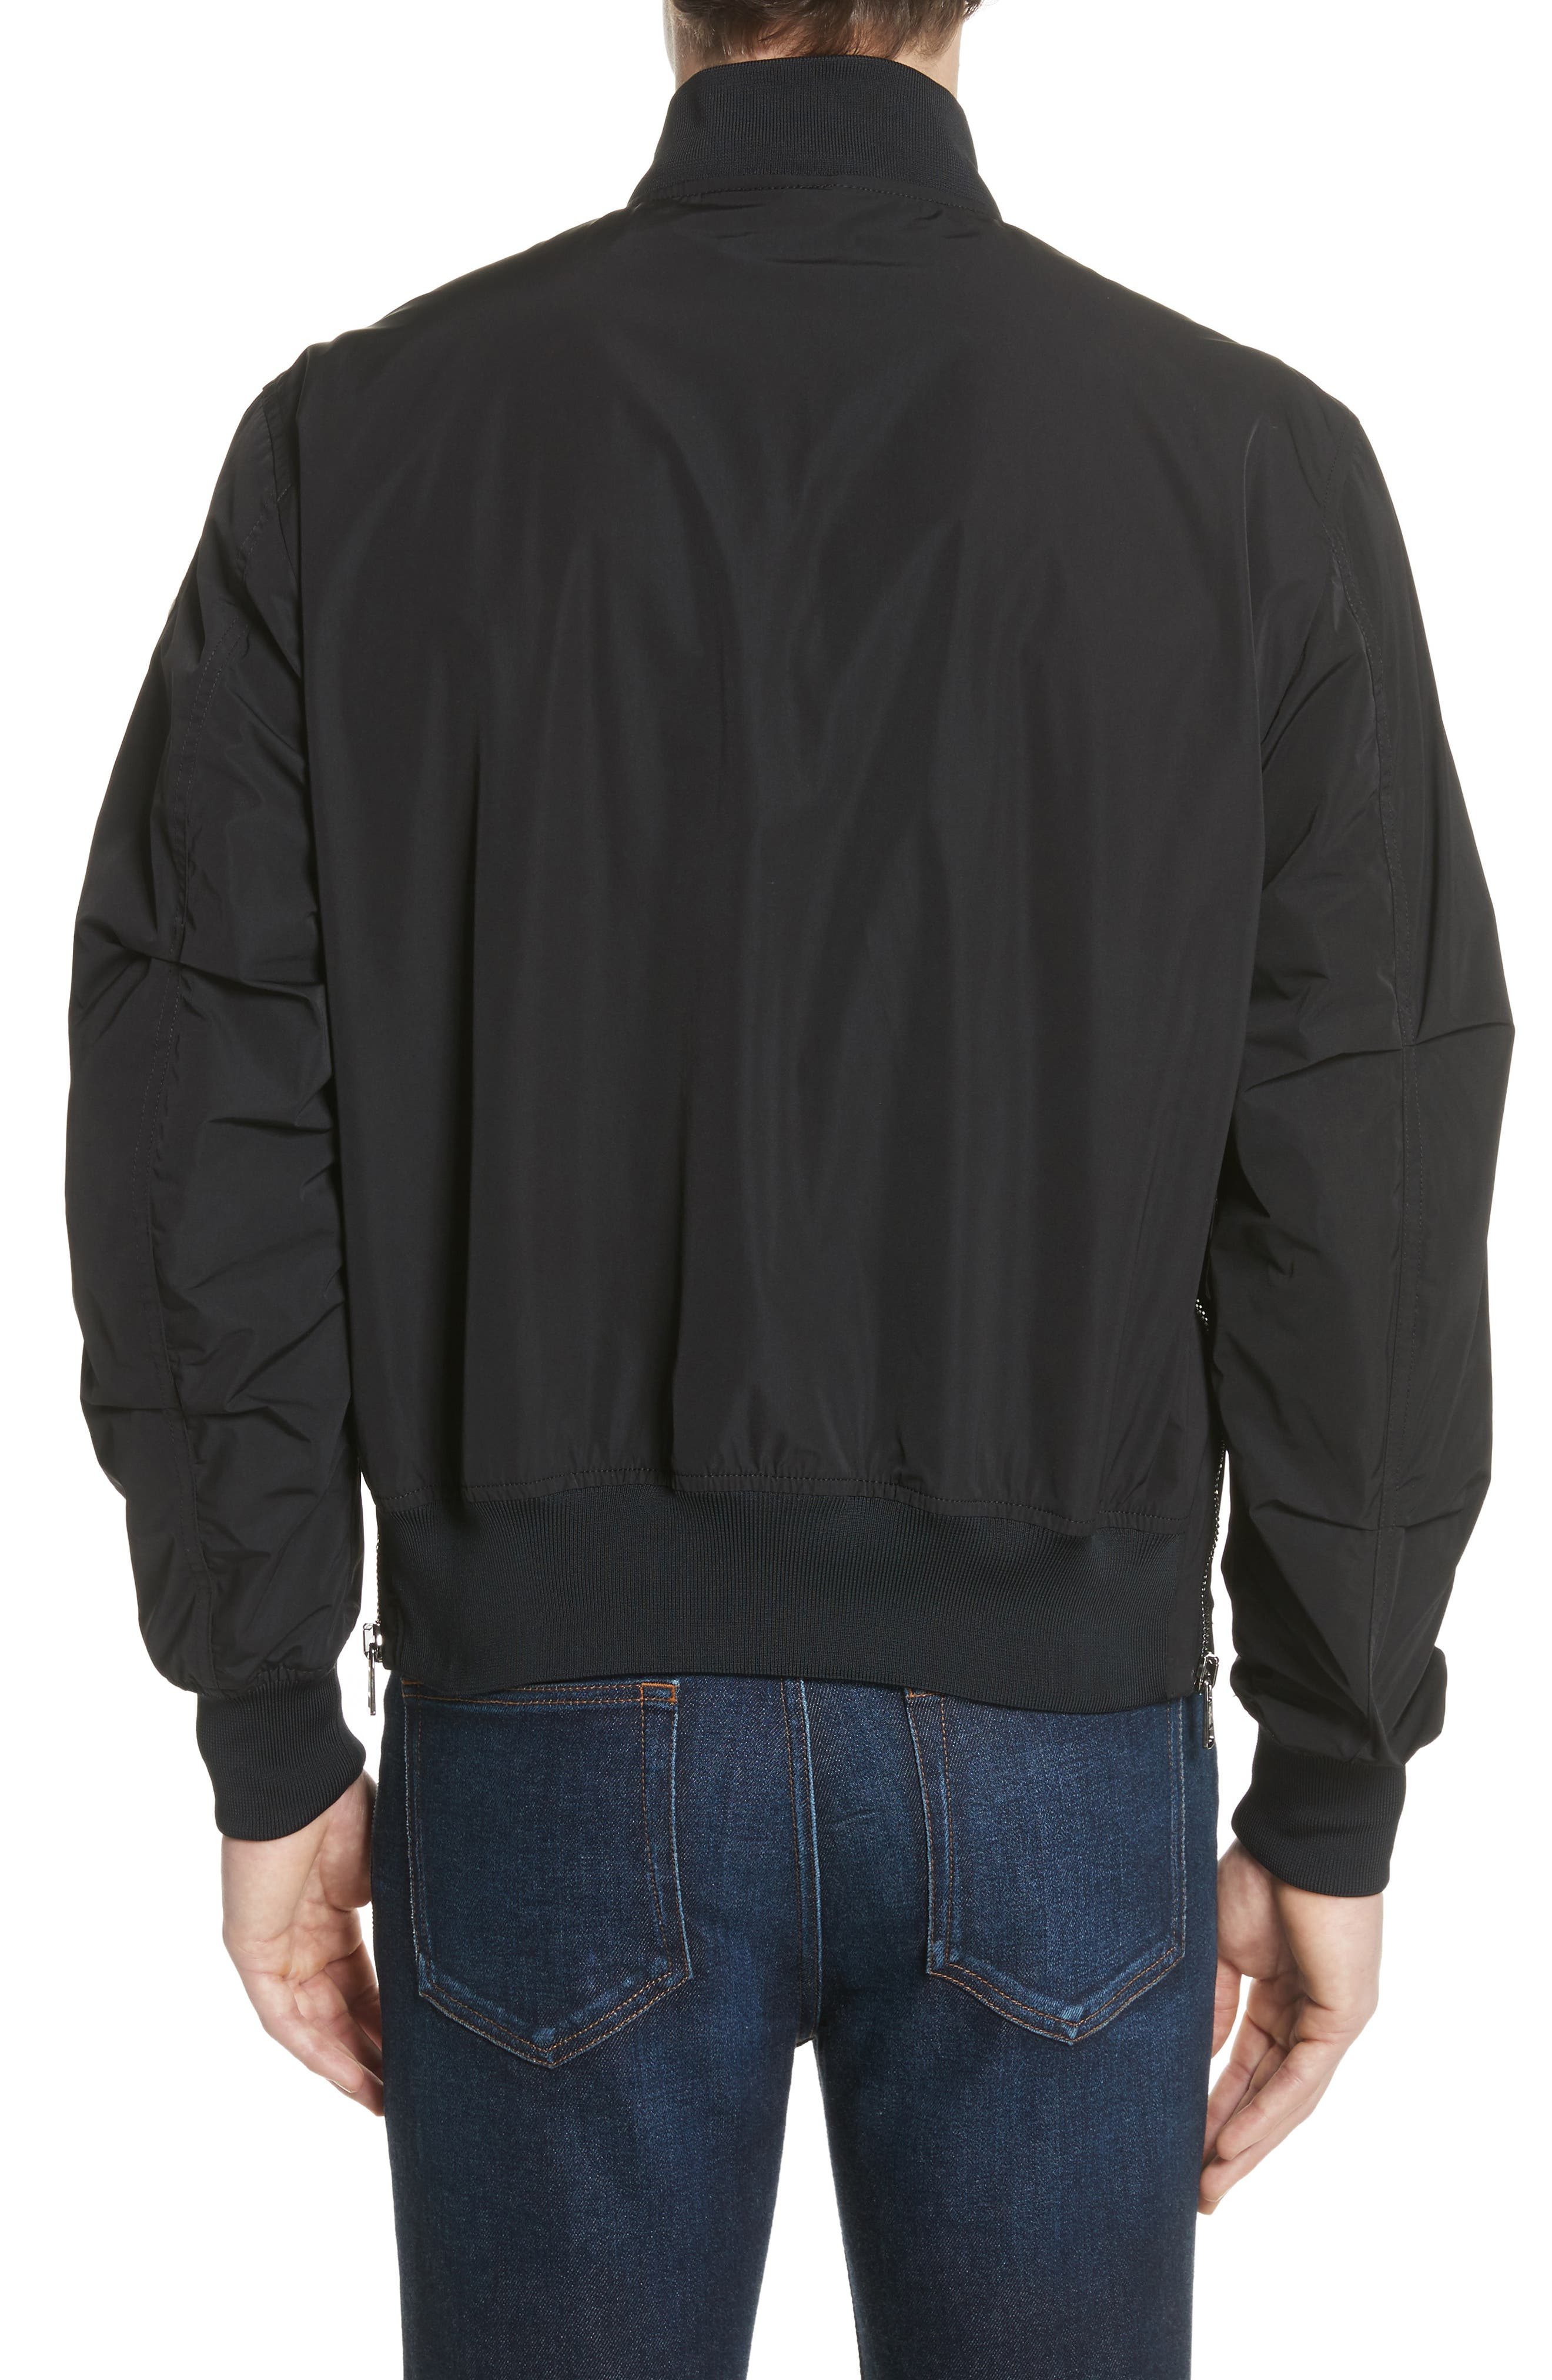 Artouste Bomber Jacket,                             Alternate thumbnail 2, color,                             001